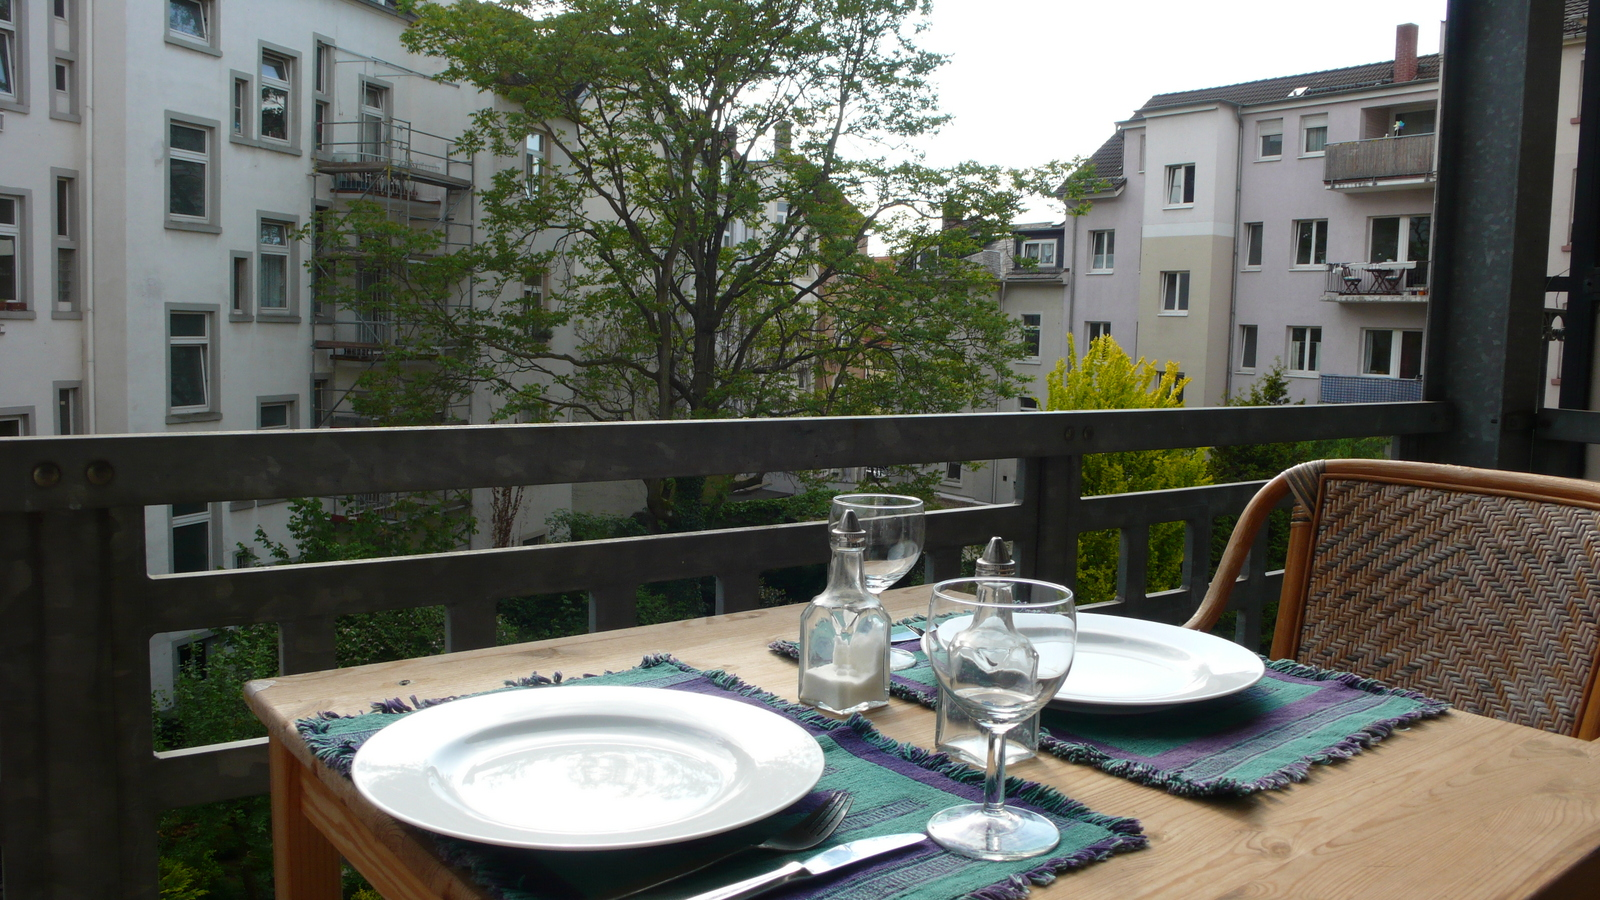 apartment-von-privat-in-frankfurt-next-to-the-fair-balcony-2nd-floor Möblierte 2 Zimmerwohnung mit Balkon %Bockenheim